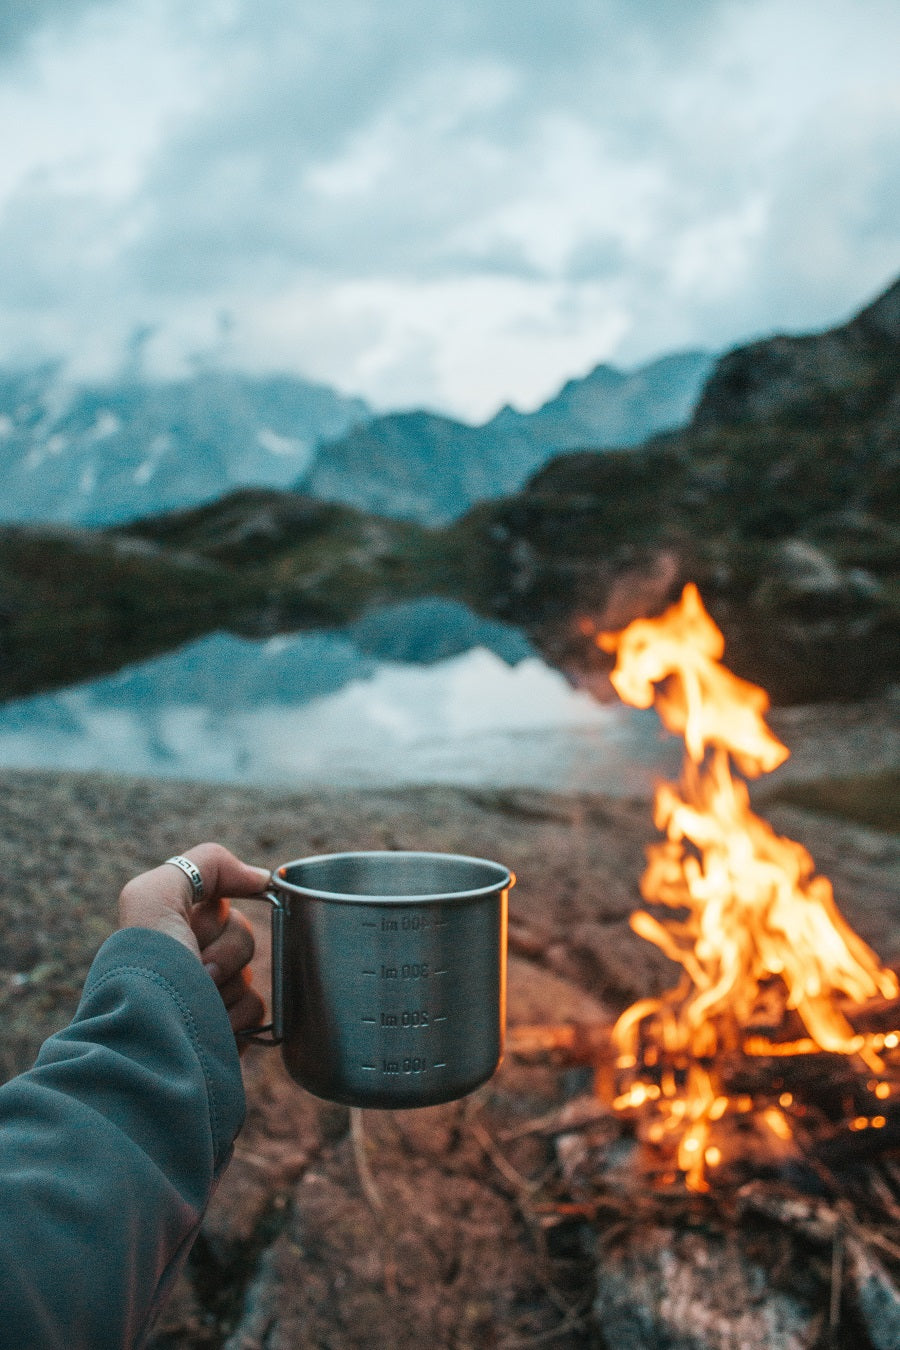 A hand holding a metal camping mug full of coffee while a campfire and mountain peaks fill the background